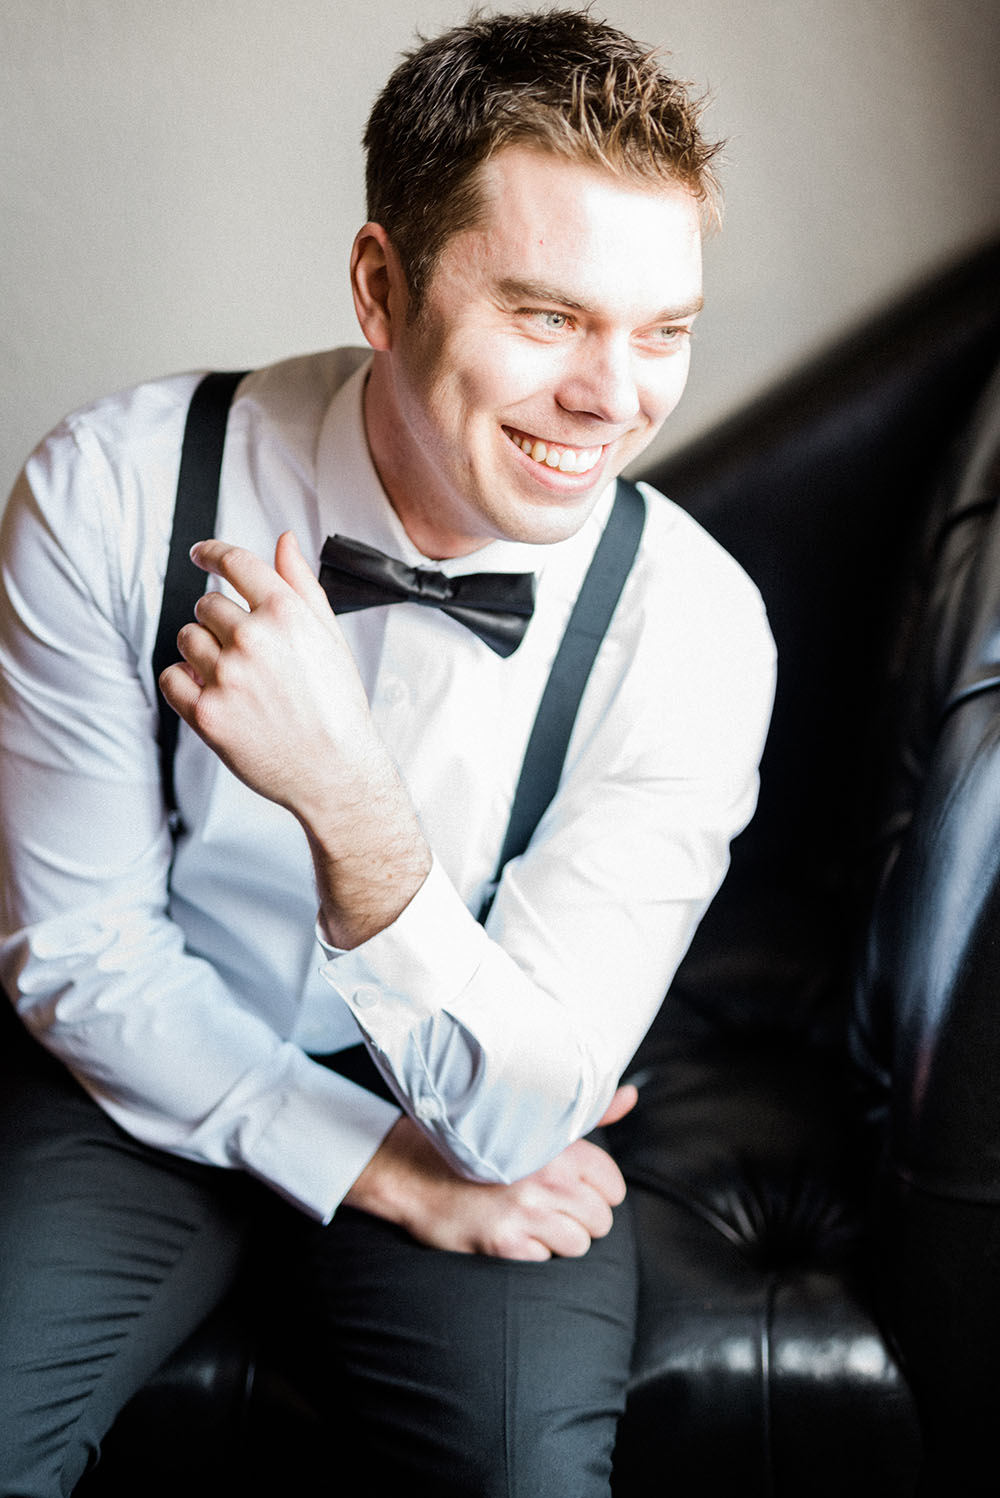 candid photo of groom smiling